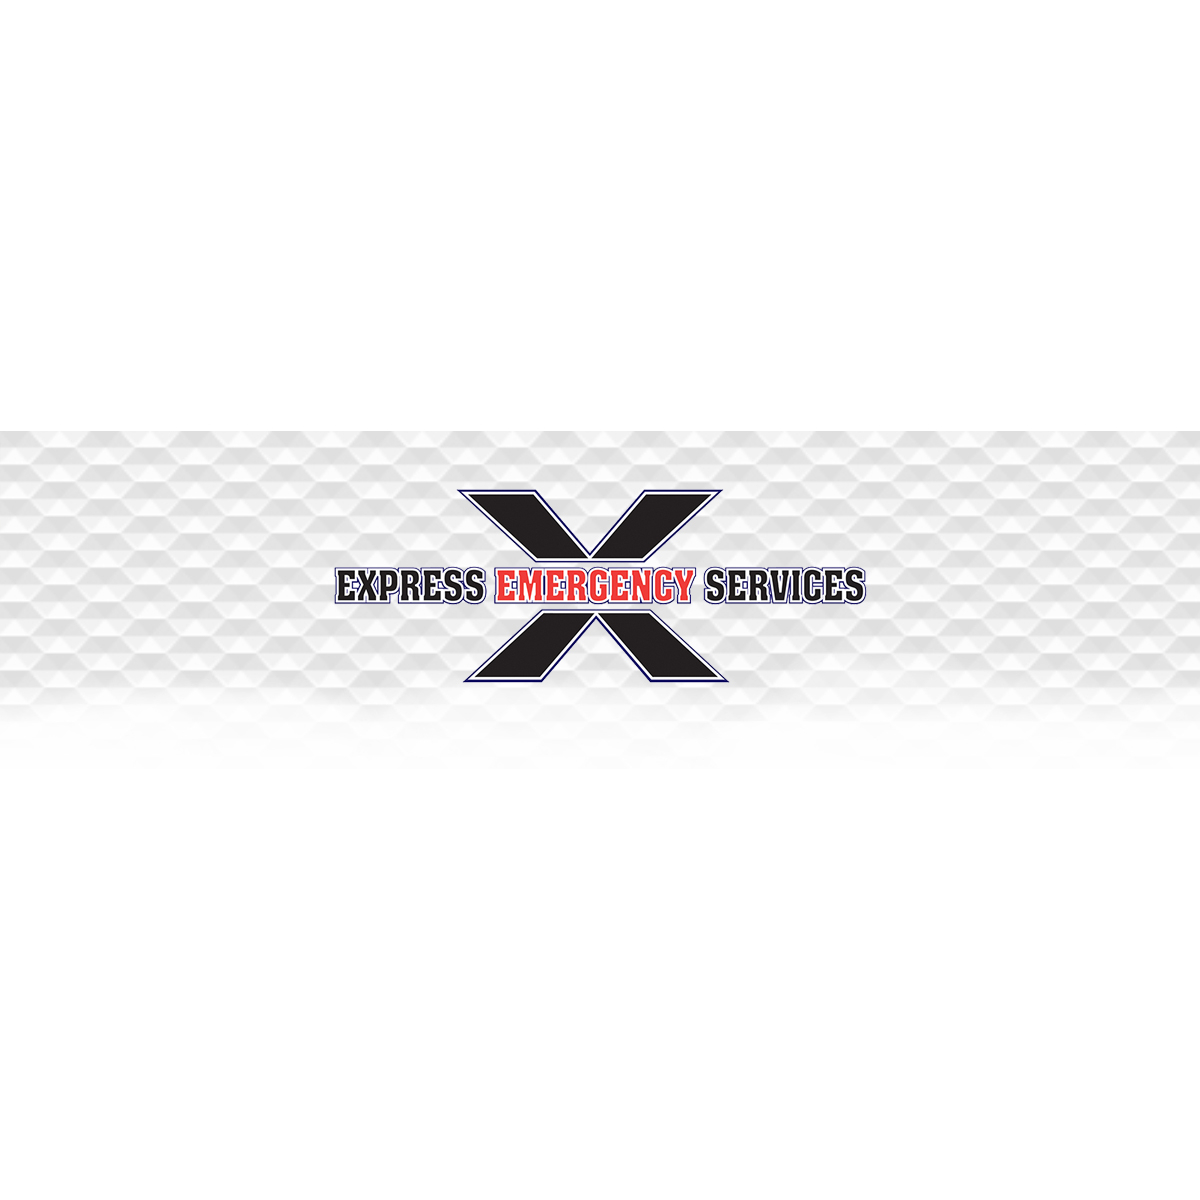 Express Emergency Services